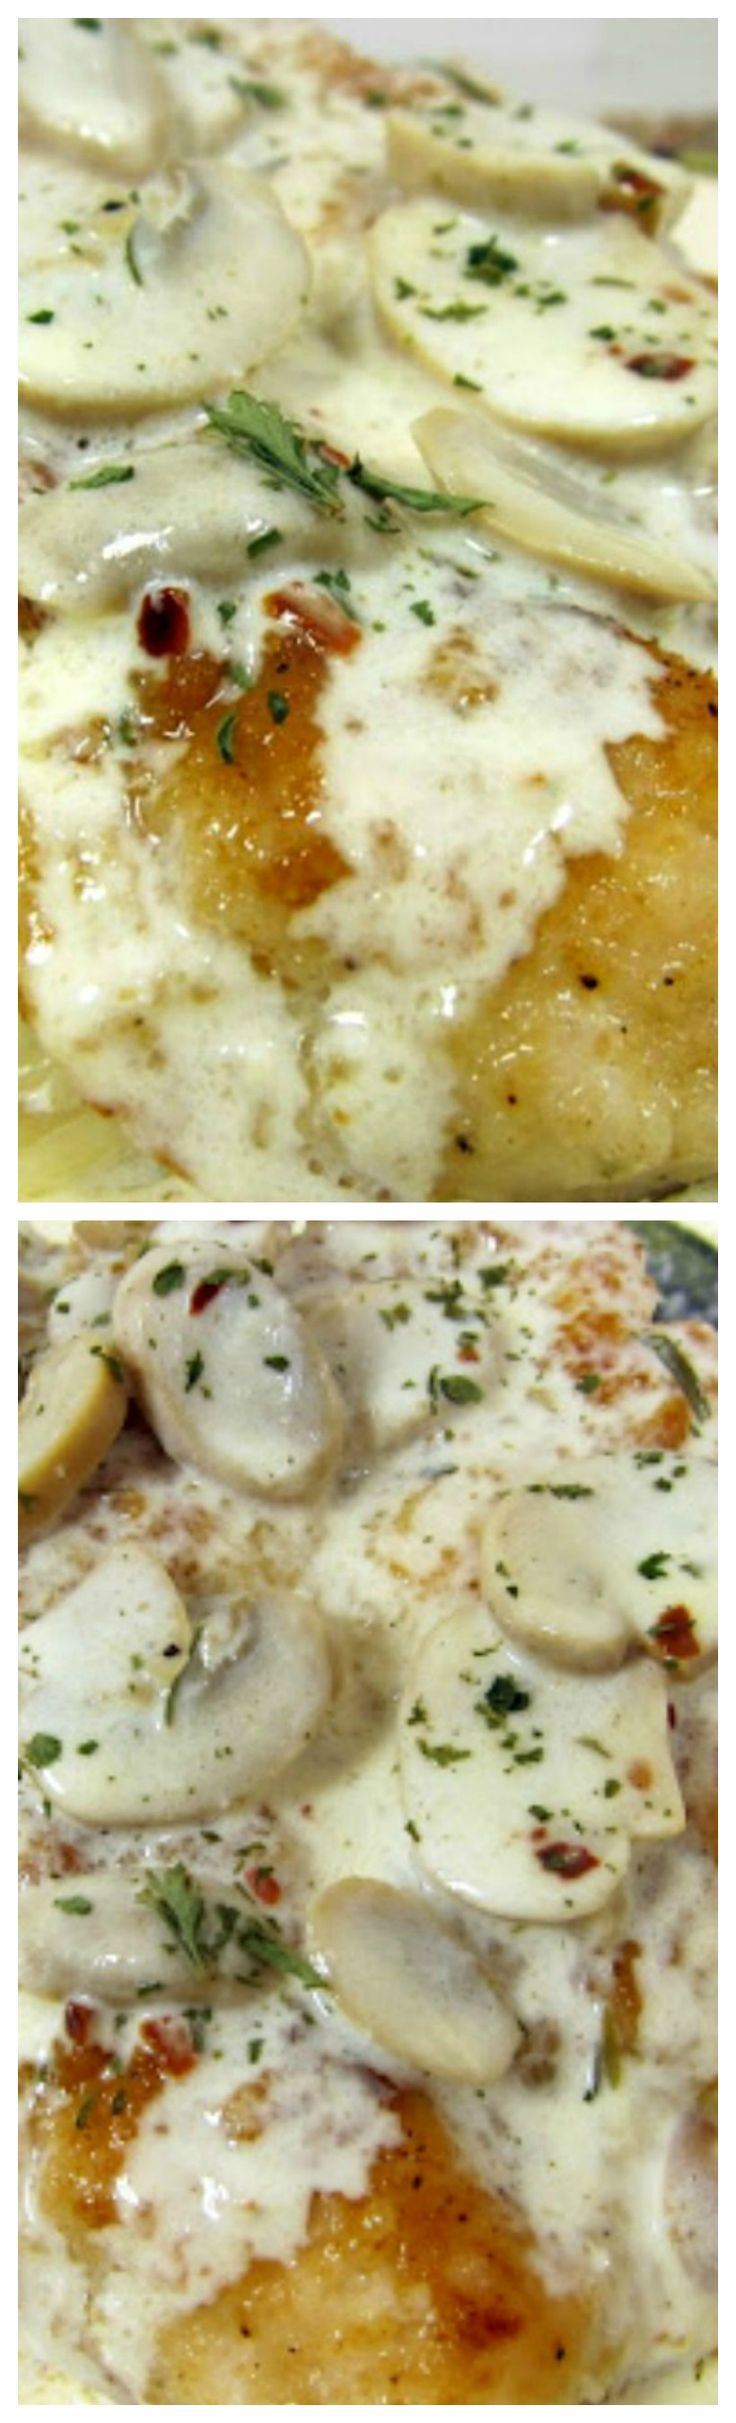 Carrabba's Champagne Chicken ~ Pan sautéed chicken in a champagne cream sauce - so delicious... Ready in minutes!